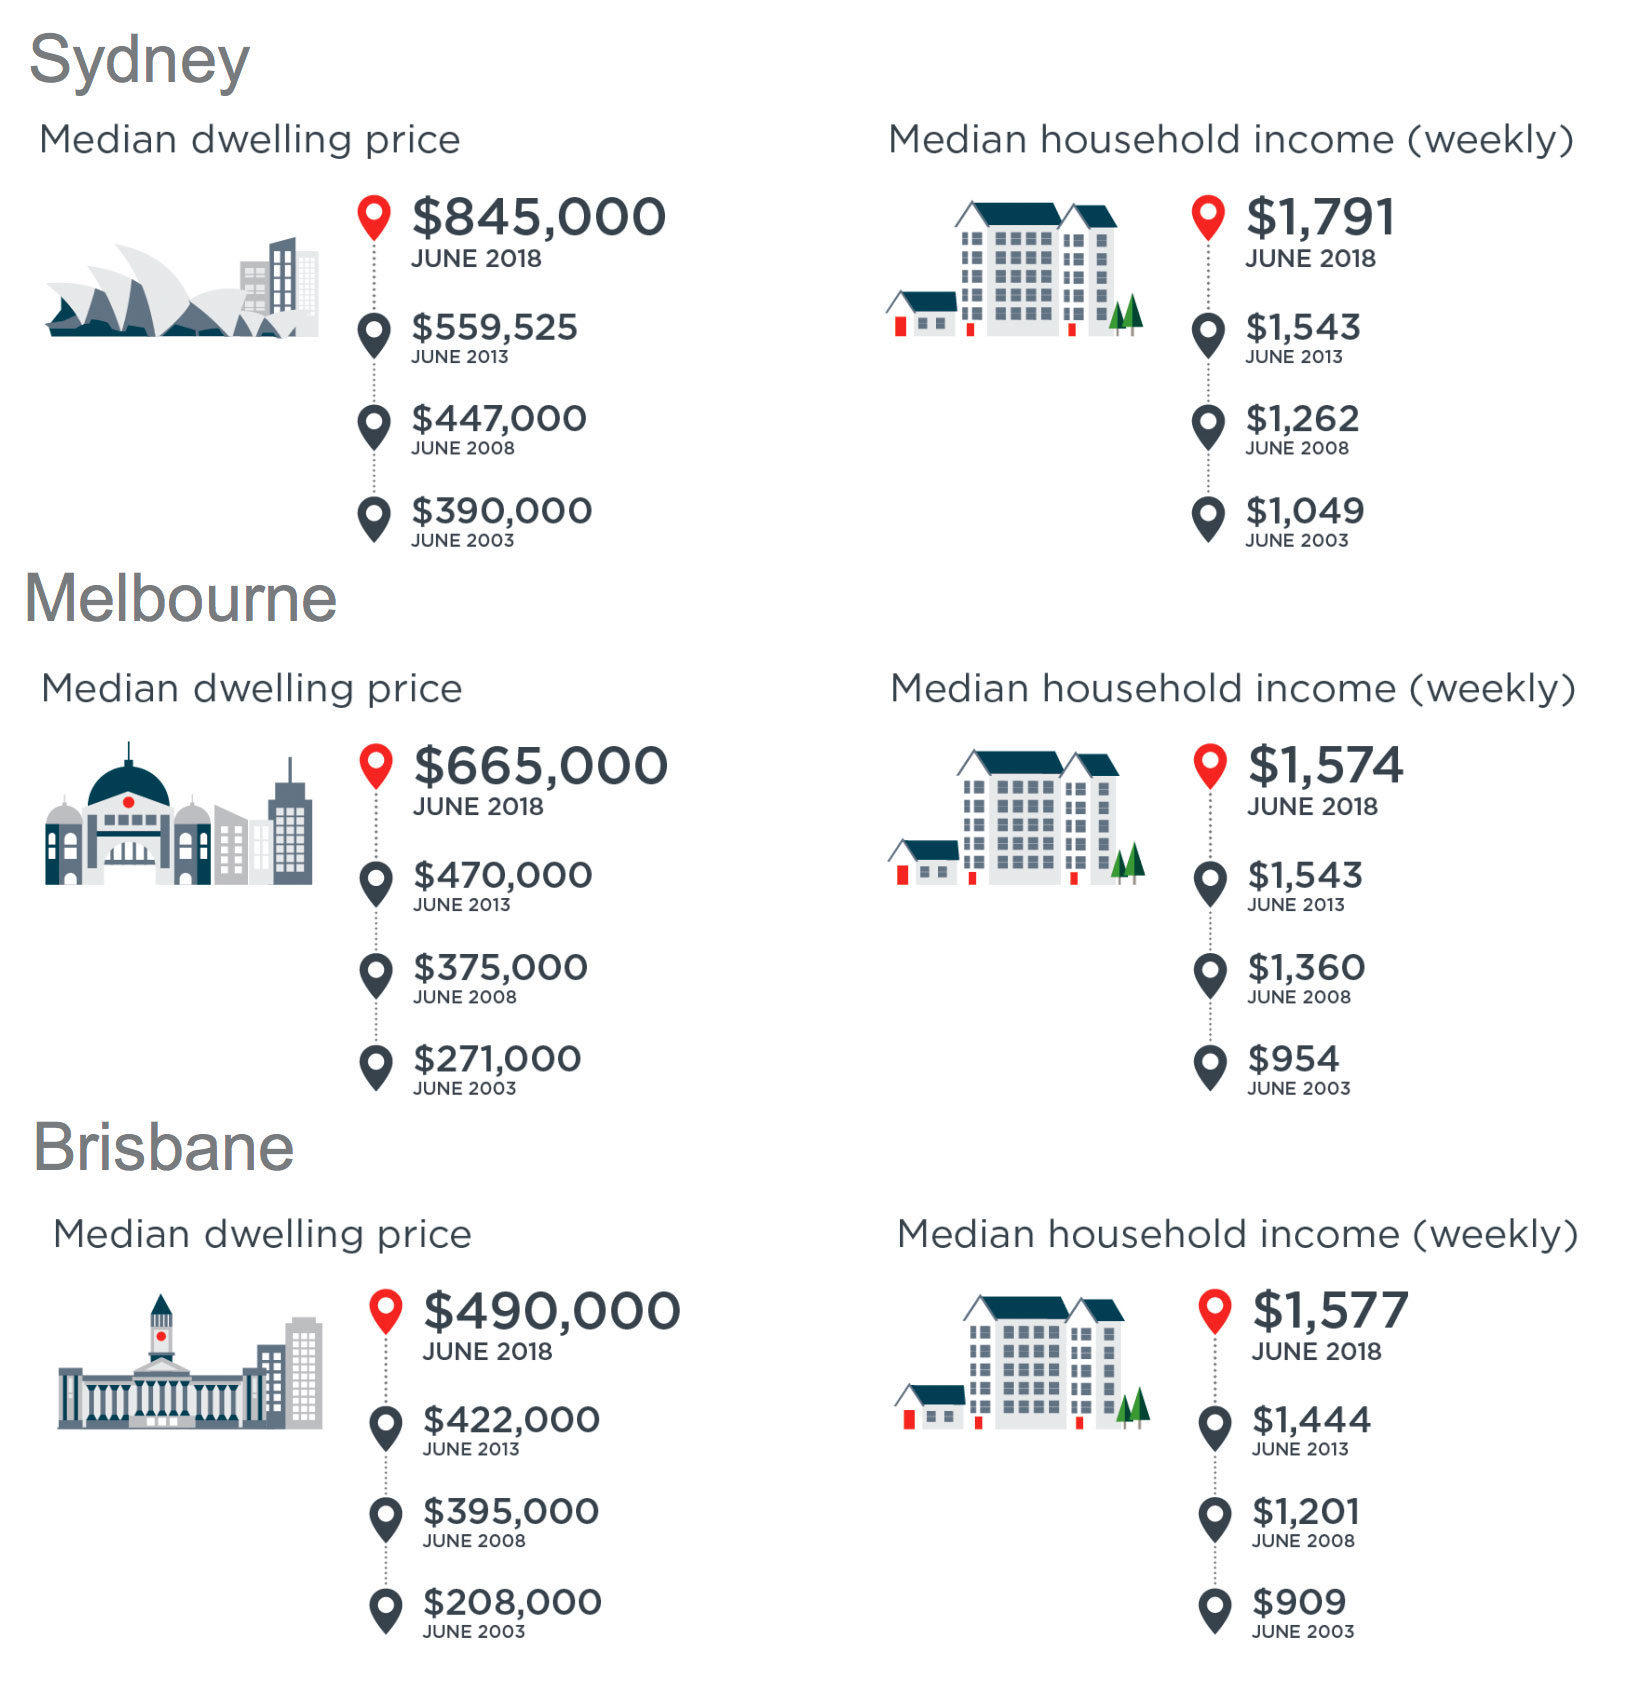 The past ten years has seen worsening housing affordability fuelled primarily by booming property prices across Sydney and Melbourne.